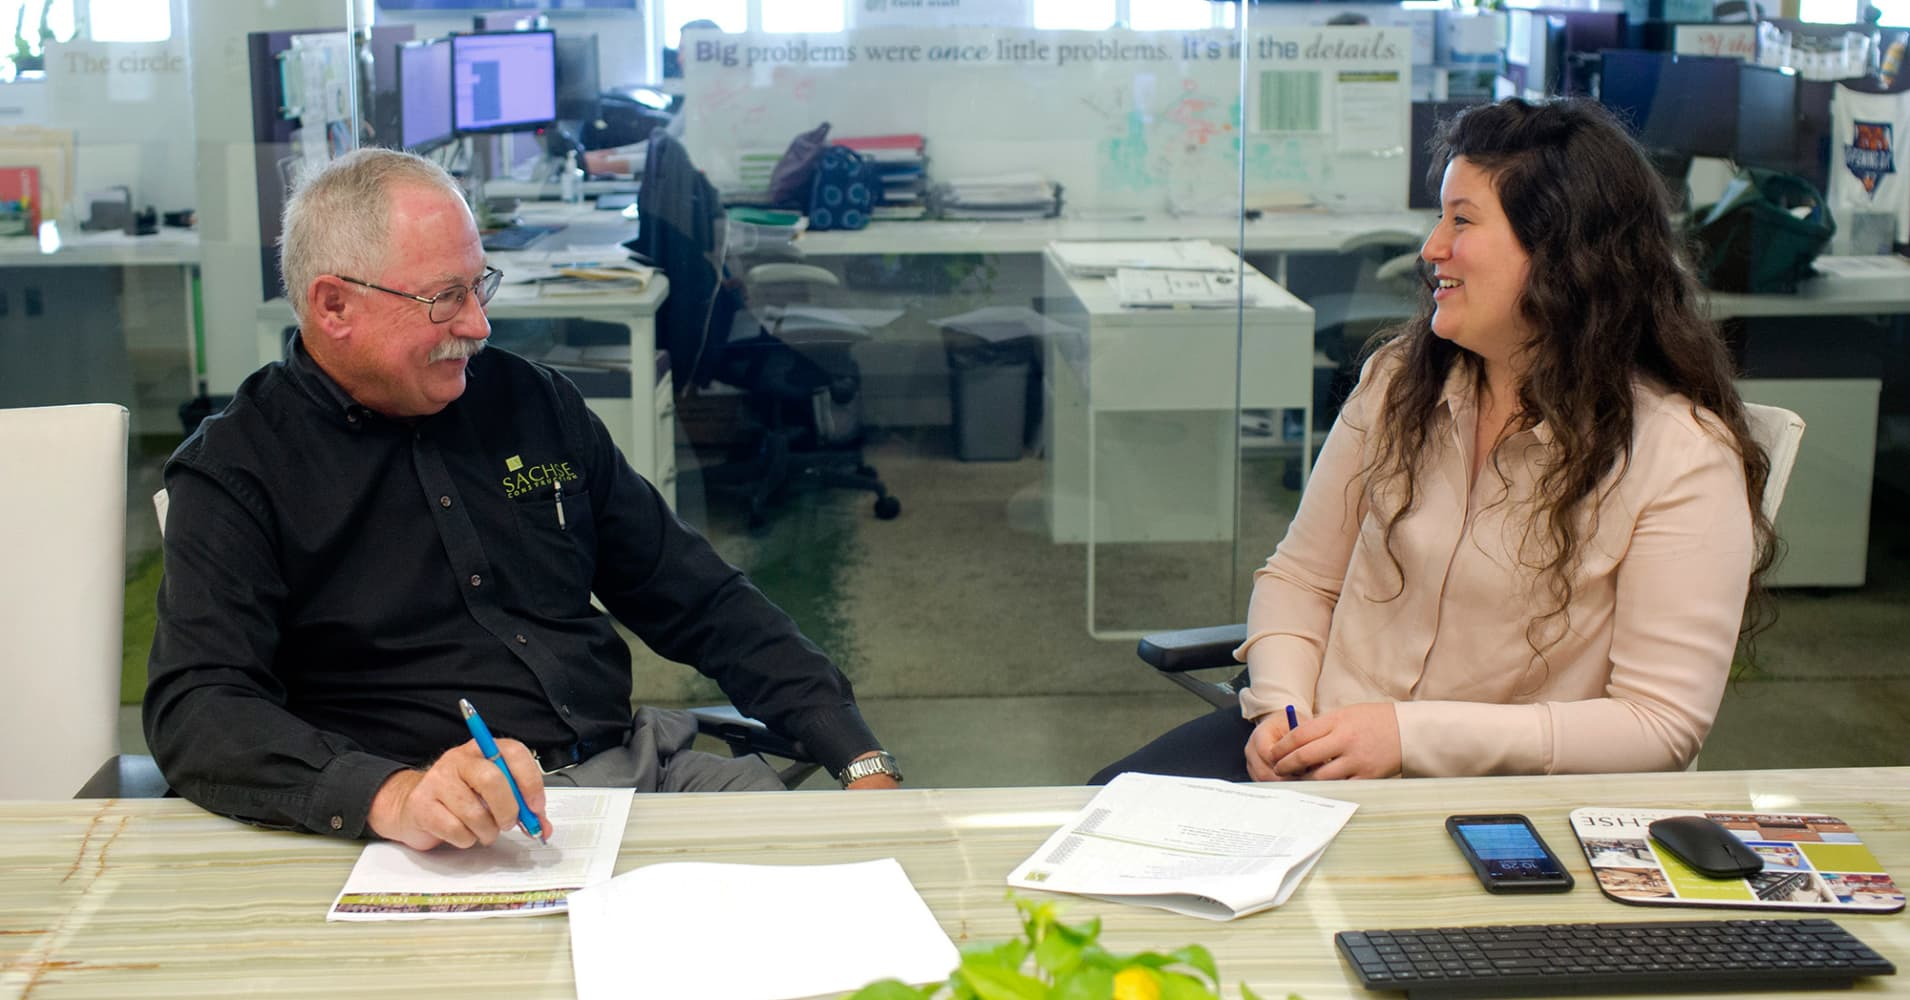 Jim Jehle, 66, a senior project manager, meets with his mentor, Nicole Mancino, 27, the director of marketing, at Sachse Construction's office in Detroit, Oct. 9, 2017.